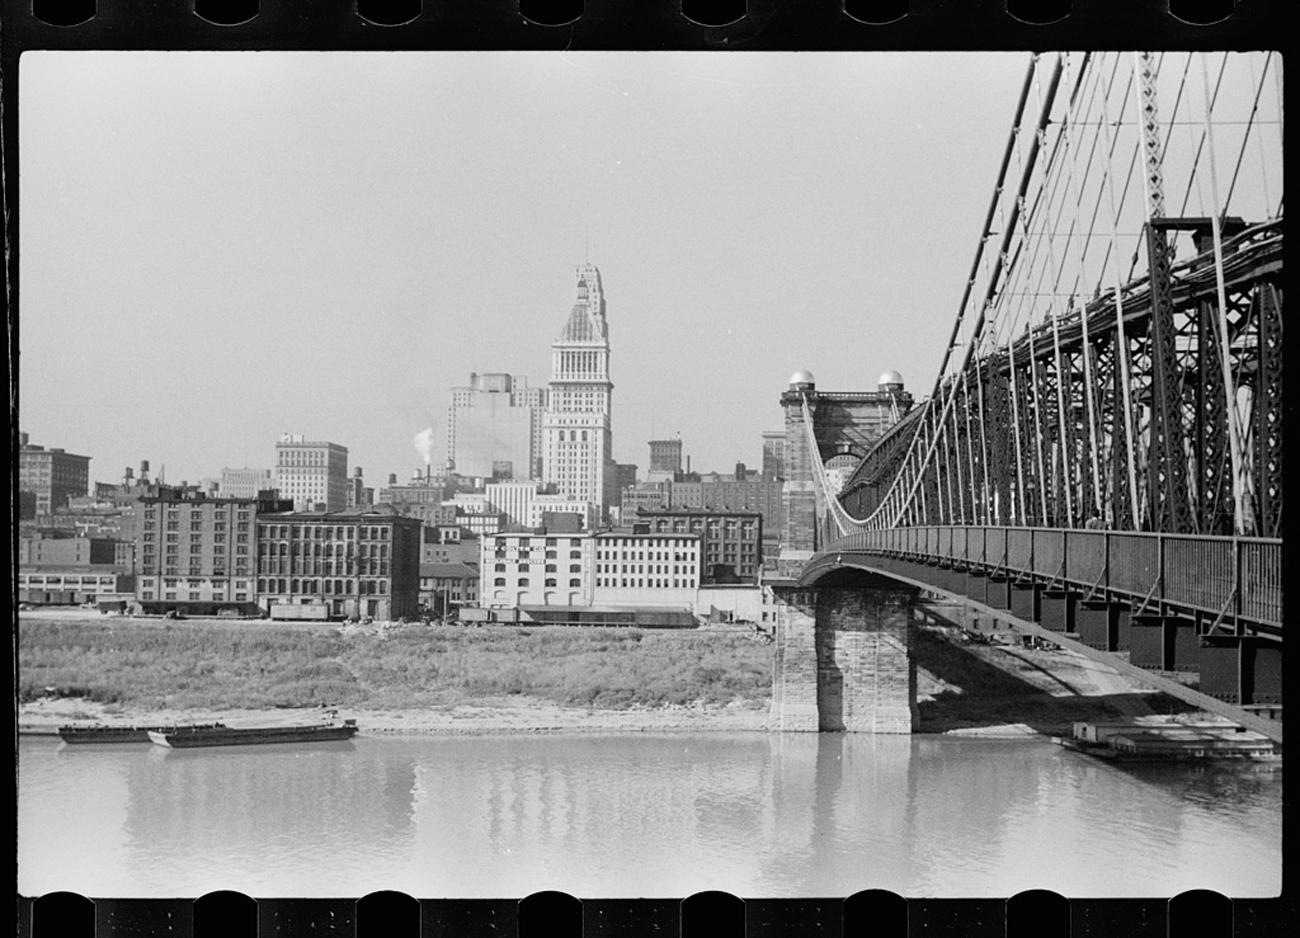 An untitled photo of Cincinnati's riverfront in September of 1939.{ }Cincinnati, like any major city, has been on a forward track of dynamic development from year to year. New buildings are added while others are demolished, and it's interesting to reflect upon the ever-changing landscape. Comparing old and new photos best illustrates how different (or similar) things may look today from when they were originally constructed. / Image: John Vachon for the U.S. Farm Security Administration/Office of War Information accessed via the Library of Congress Archives // Published: 3.4.19